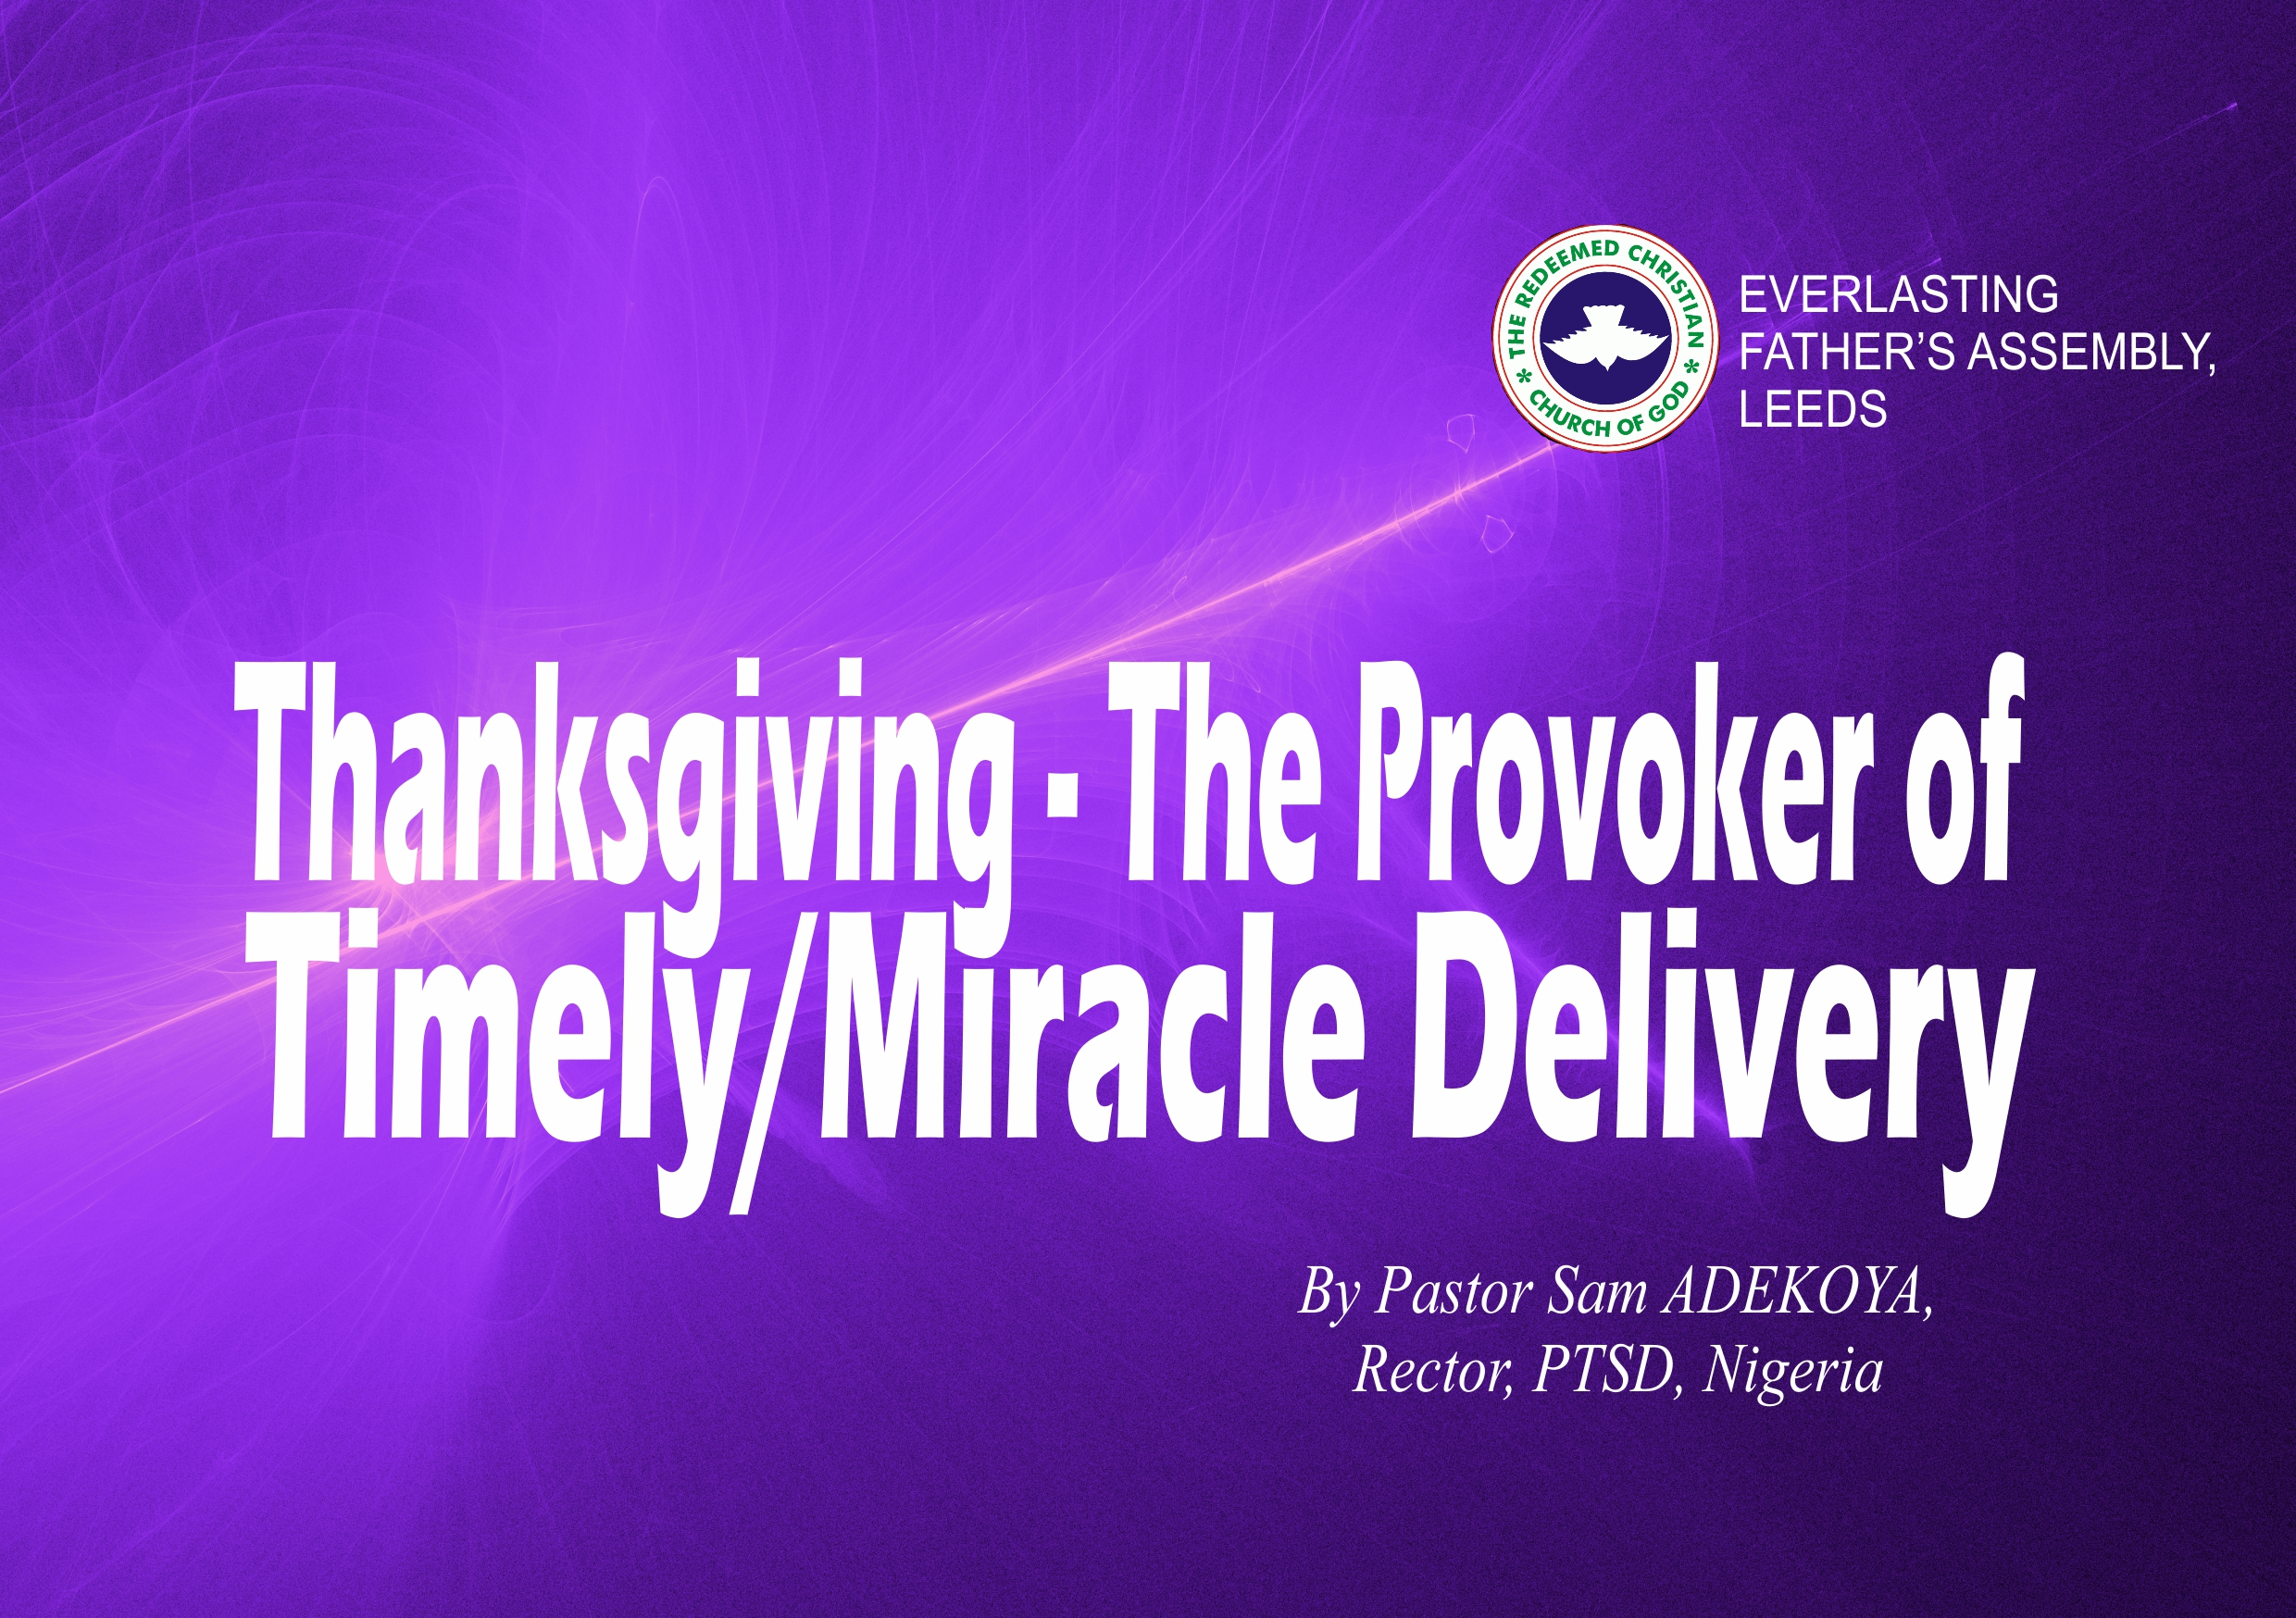 Thanksgiving – The Provoker of Timely/Miracle Delivery, by Pastor Sam Adekoya